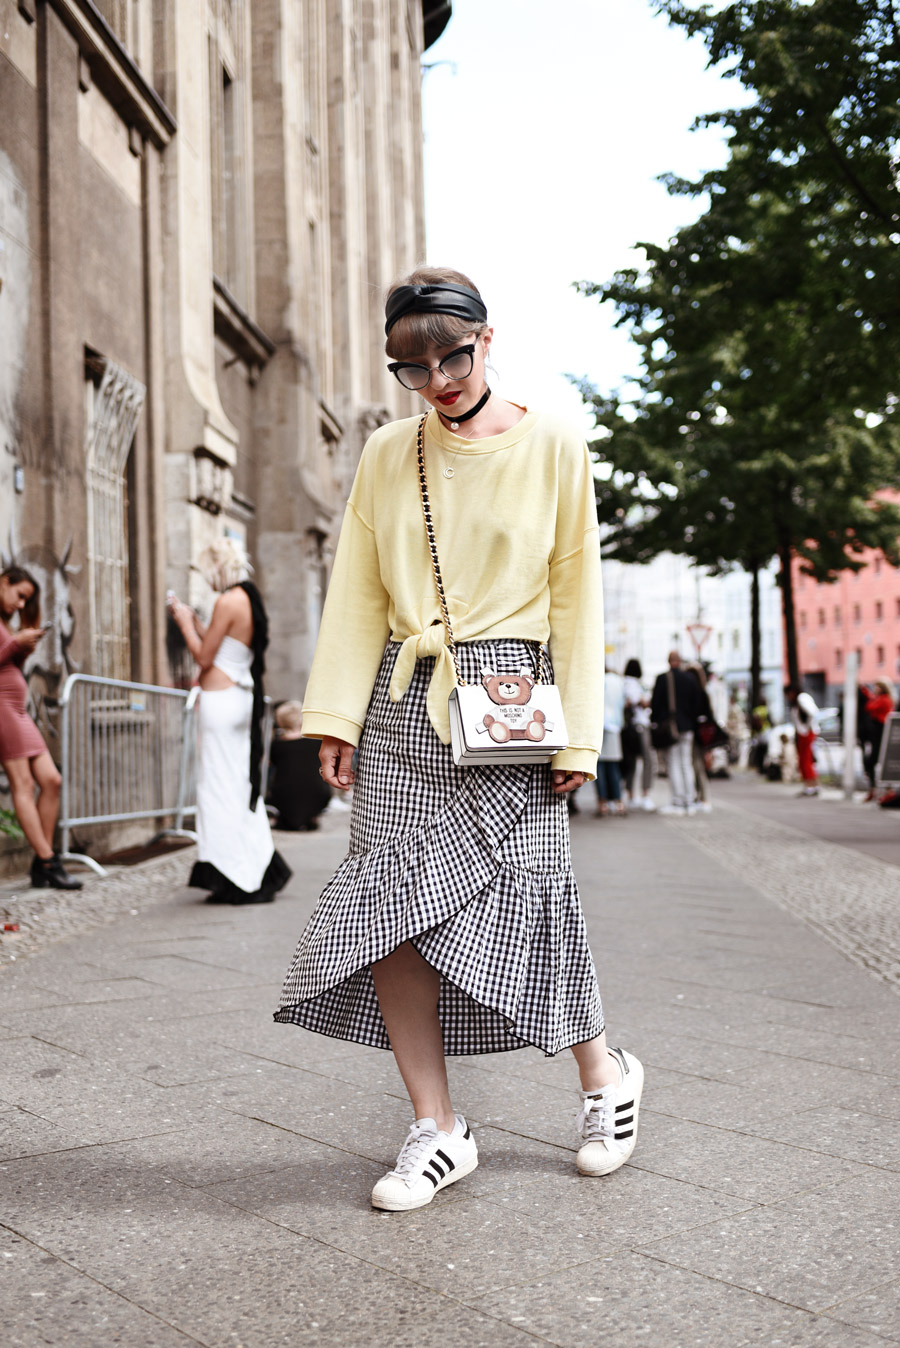 fashionweek, berlin, mbfwb, streetstyle, outfit, modeblogger, fashionblogger, styleblogger, moschino, mango, muenchen, sommer, vichy, outfit